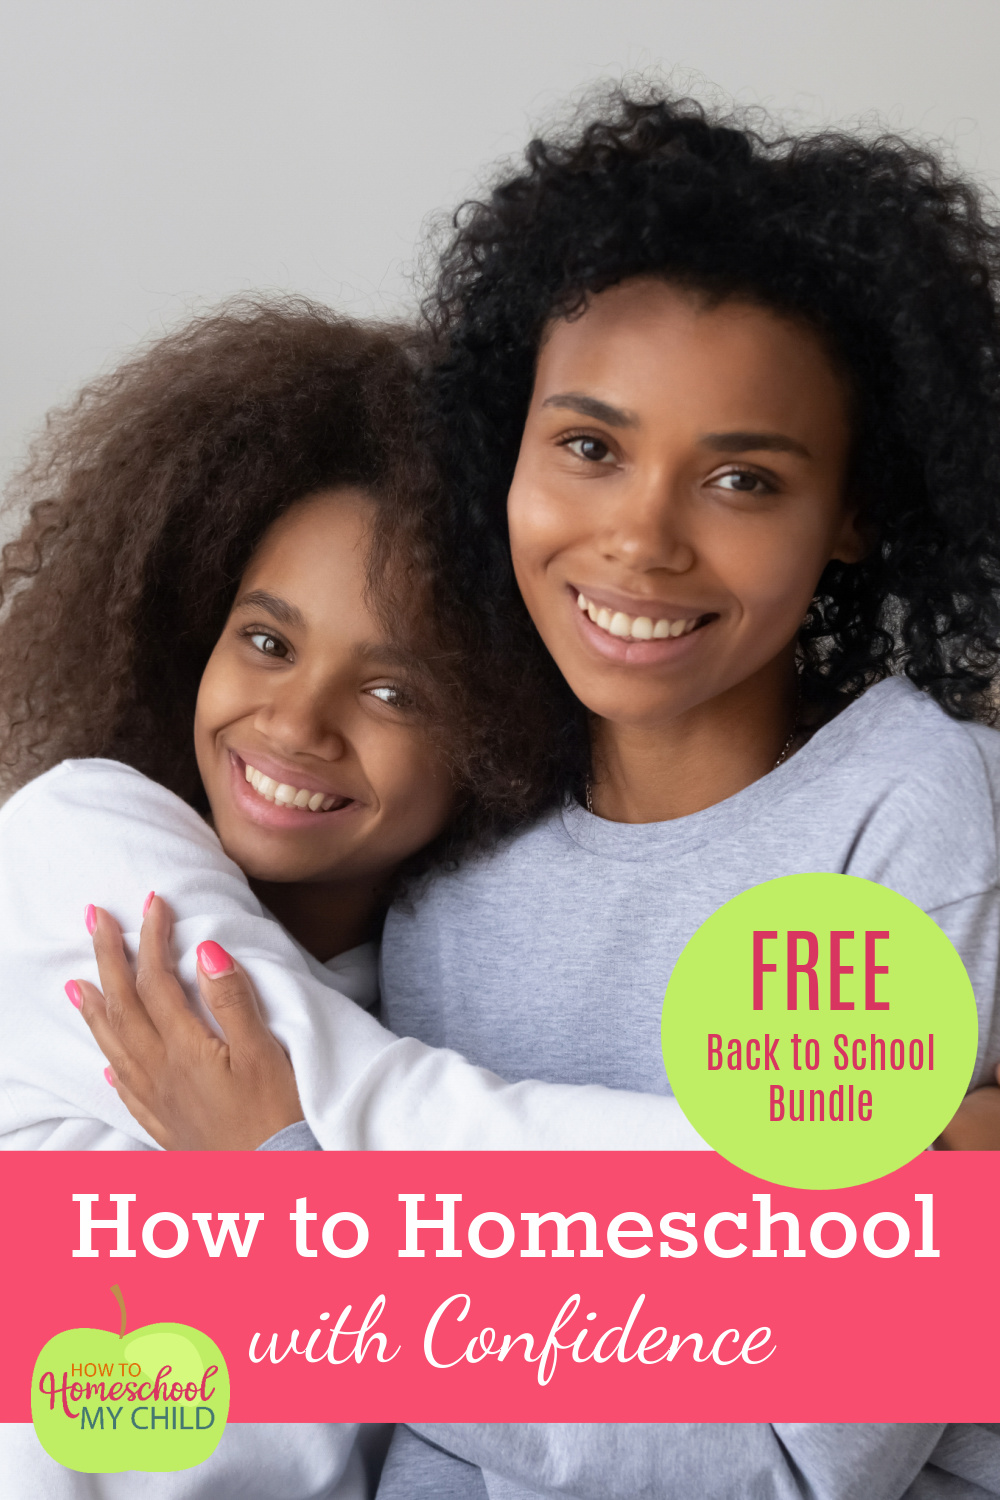 How to Homeschool with Confidence-Free Back to School Bundle